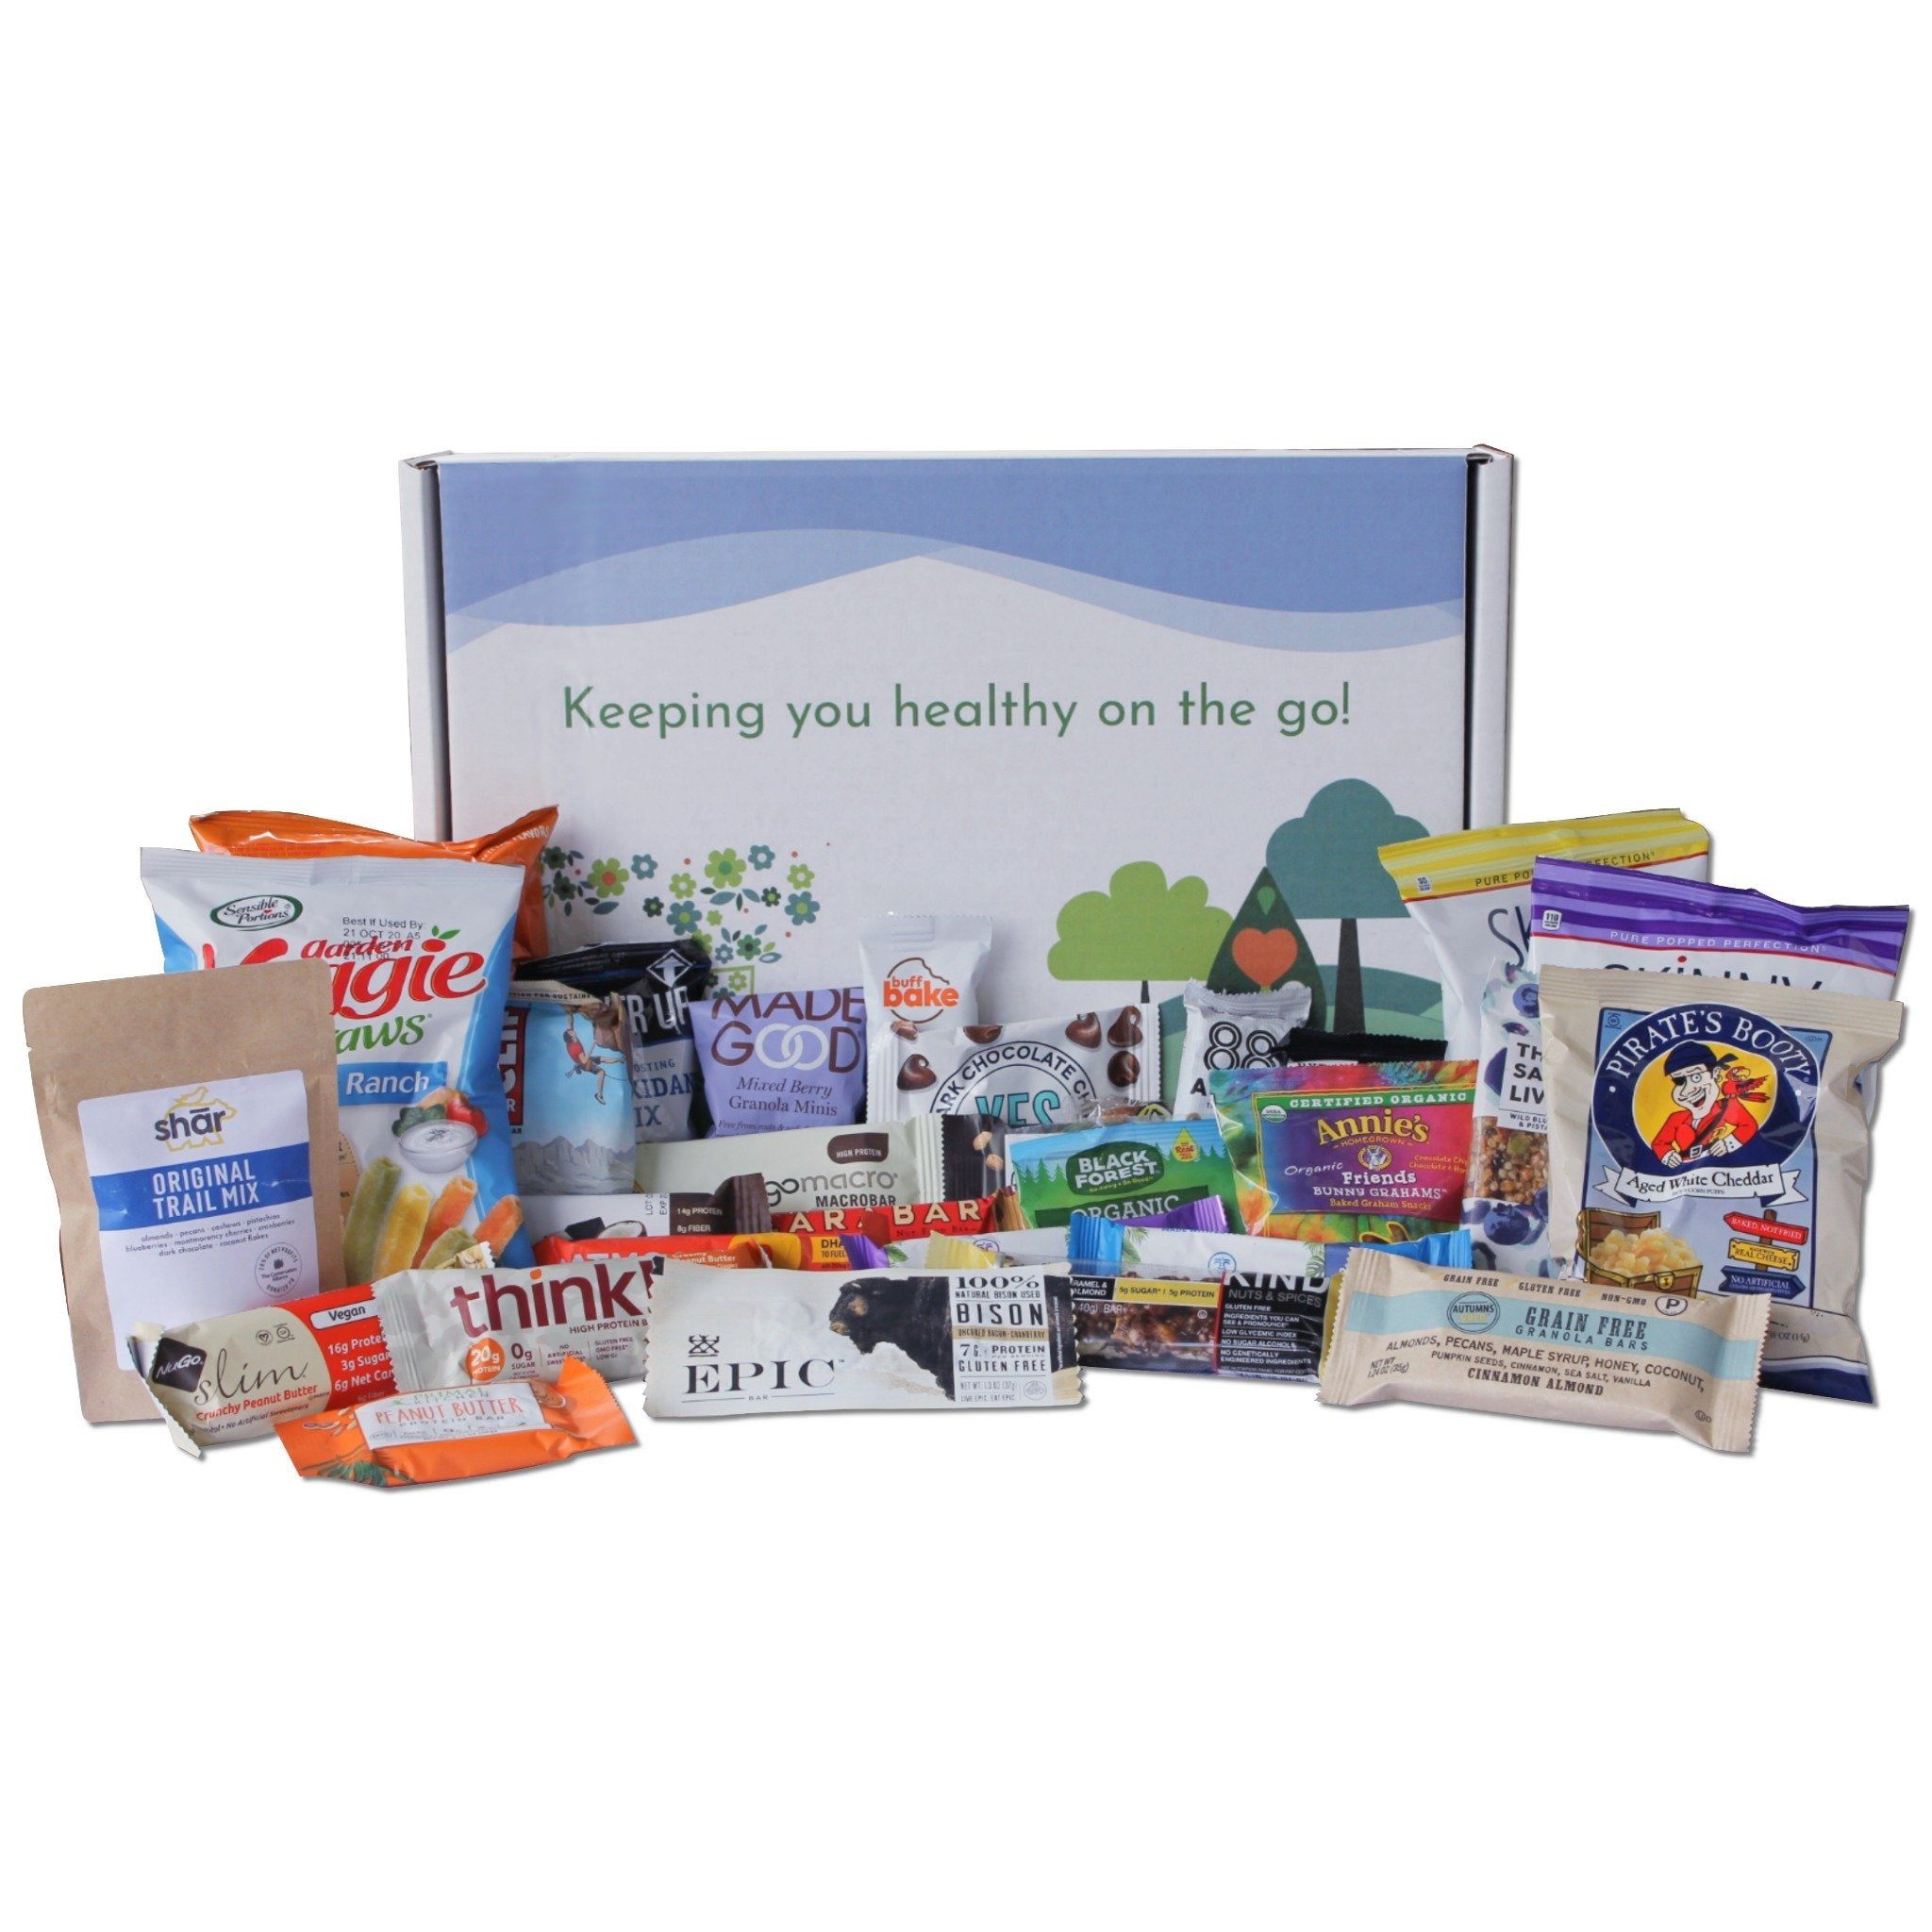 Go_Nutrition_6th_Street_Box_Product_Photo